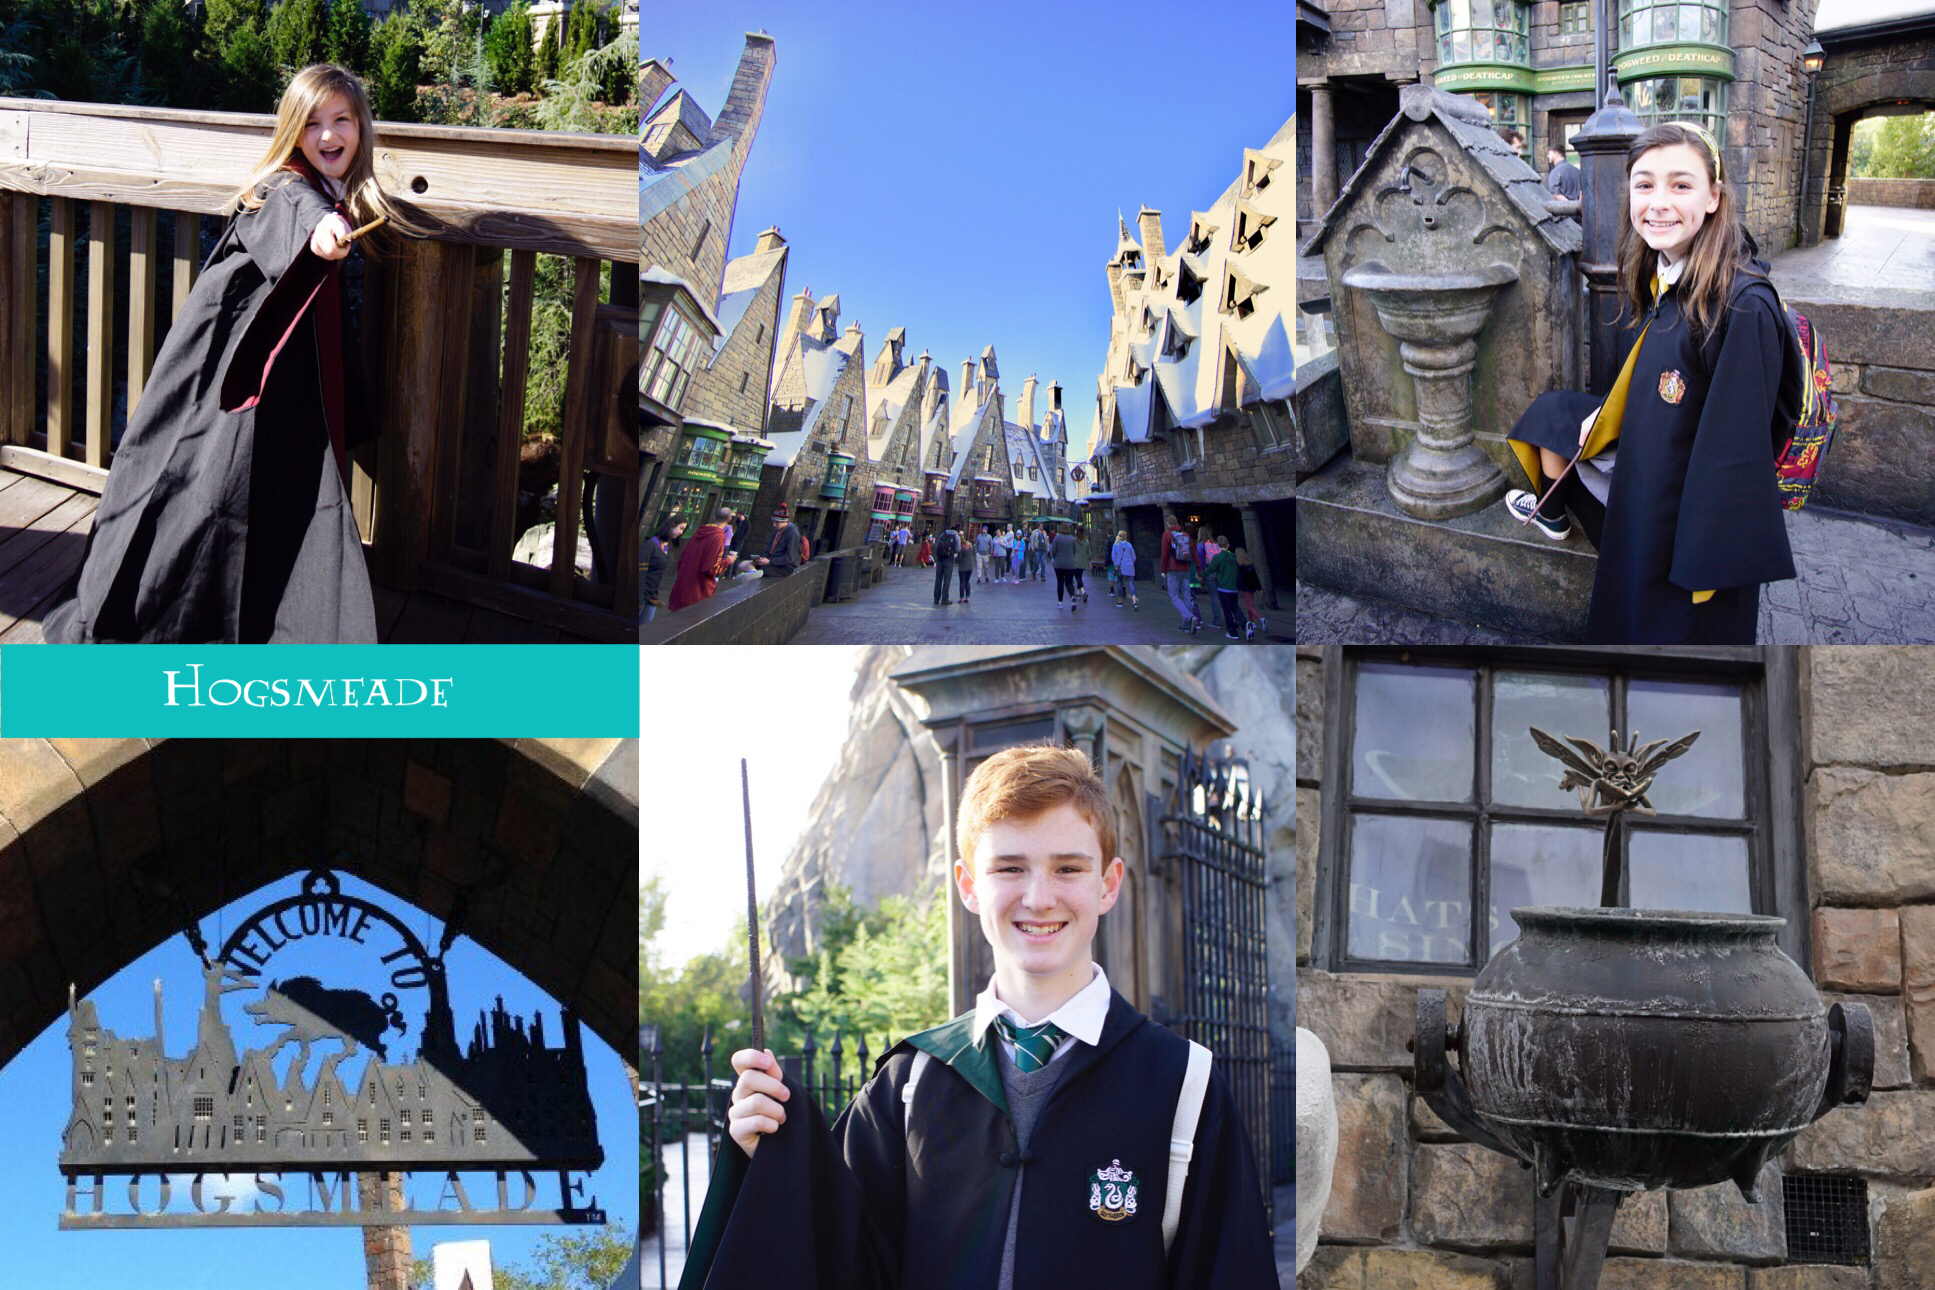 There is so much magic at the Wizarding World of Harry Potter in Orlando, Florida that can easily be missed if you don't know where and what to look for. Here are 30 thing not to miss at the Wizarding World of Harry Potter including hidden gems and top tips for planning your trip.